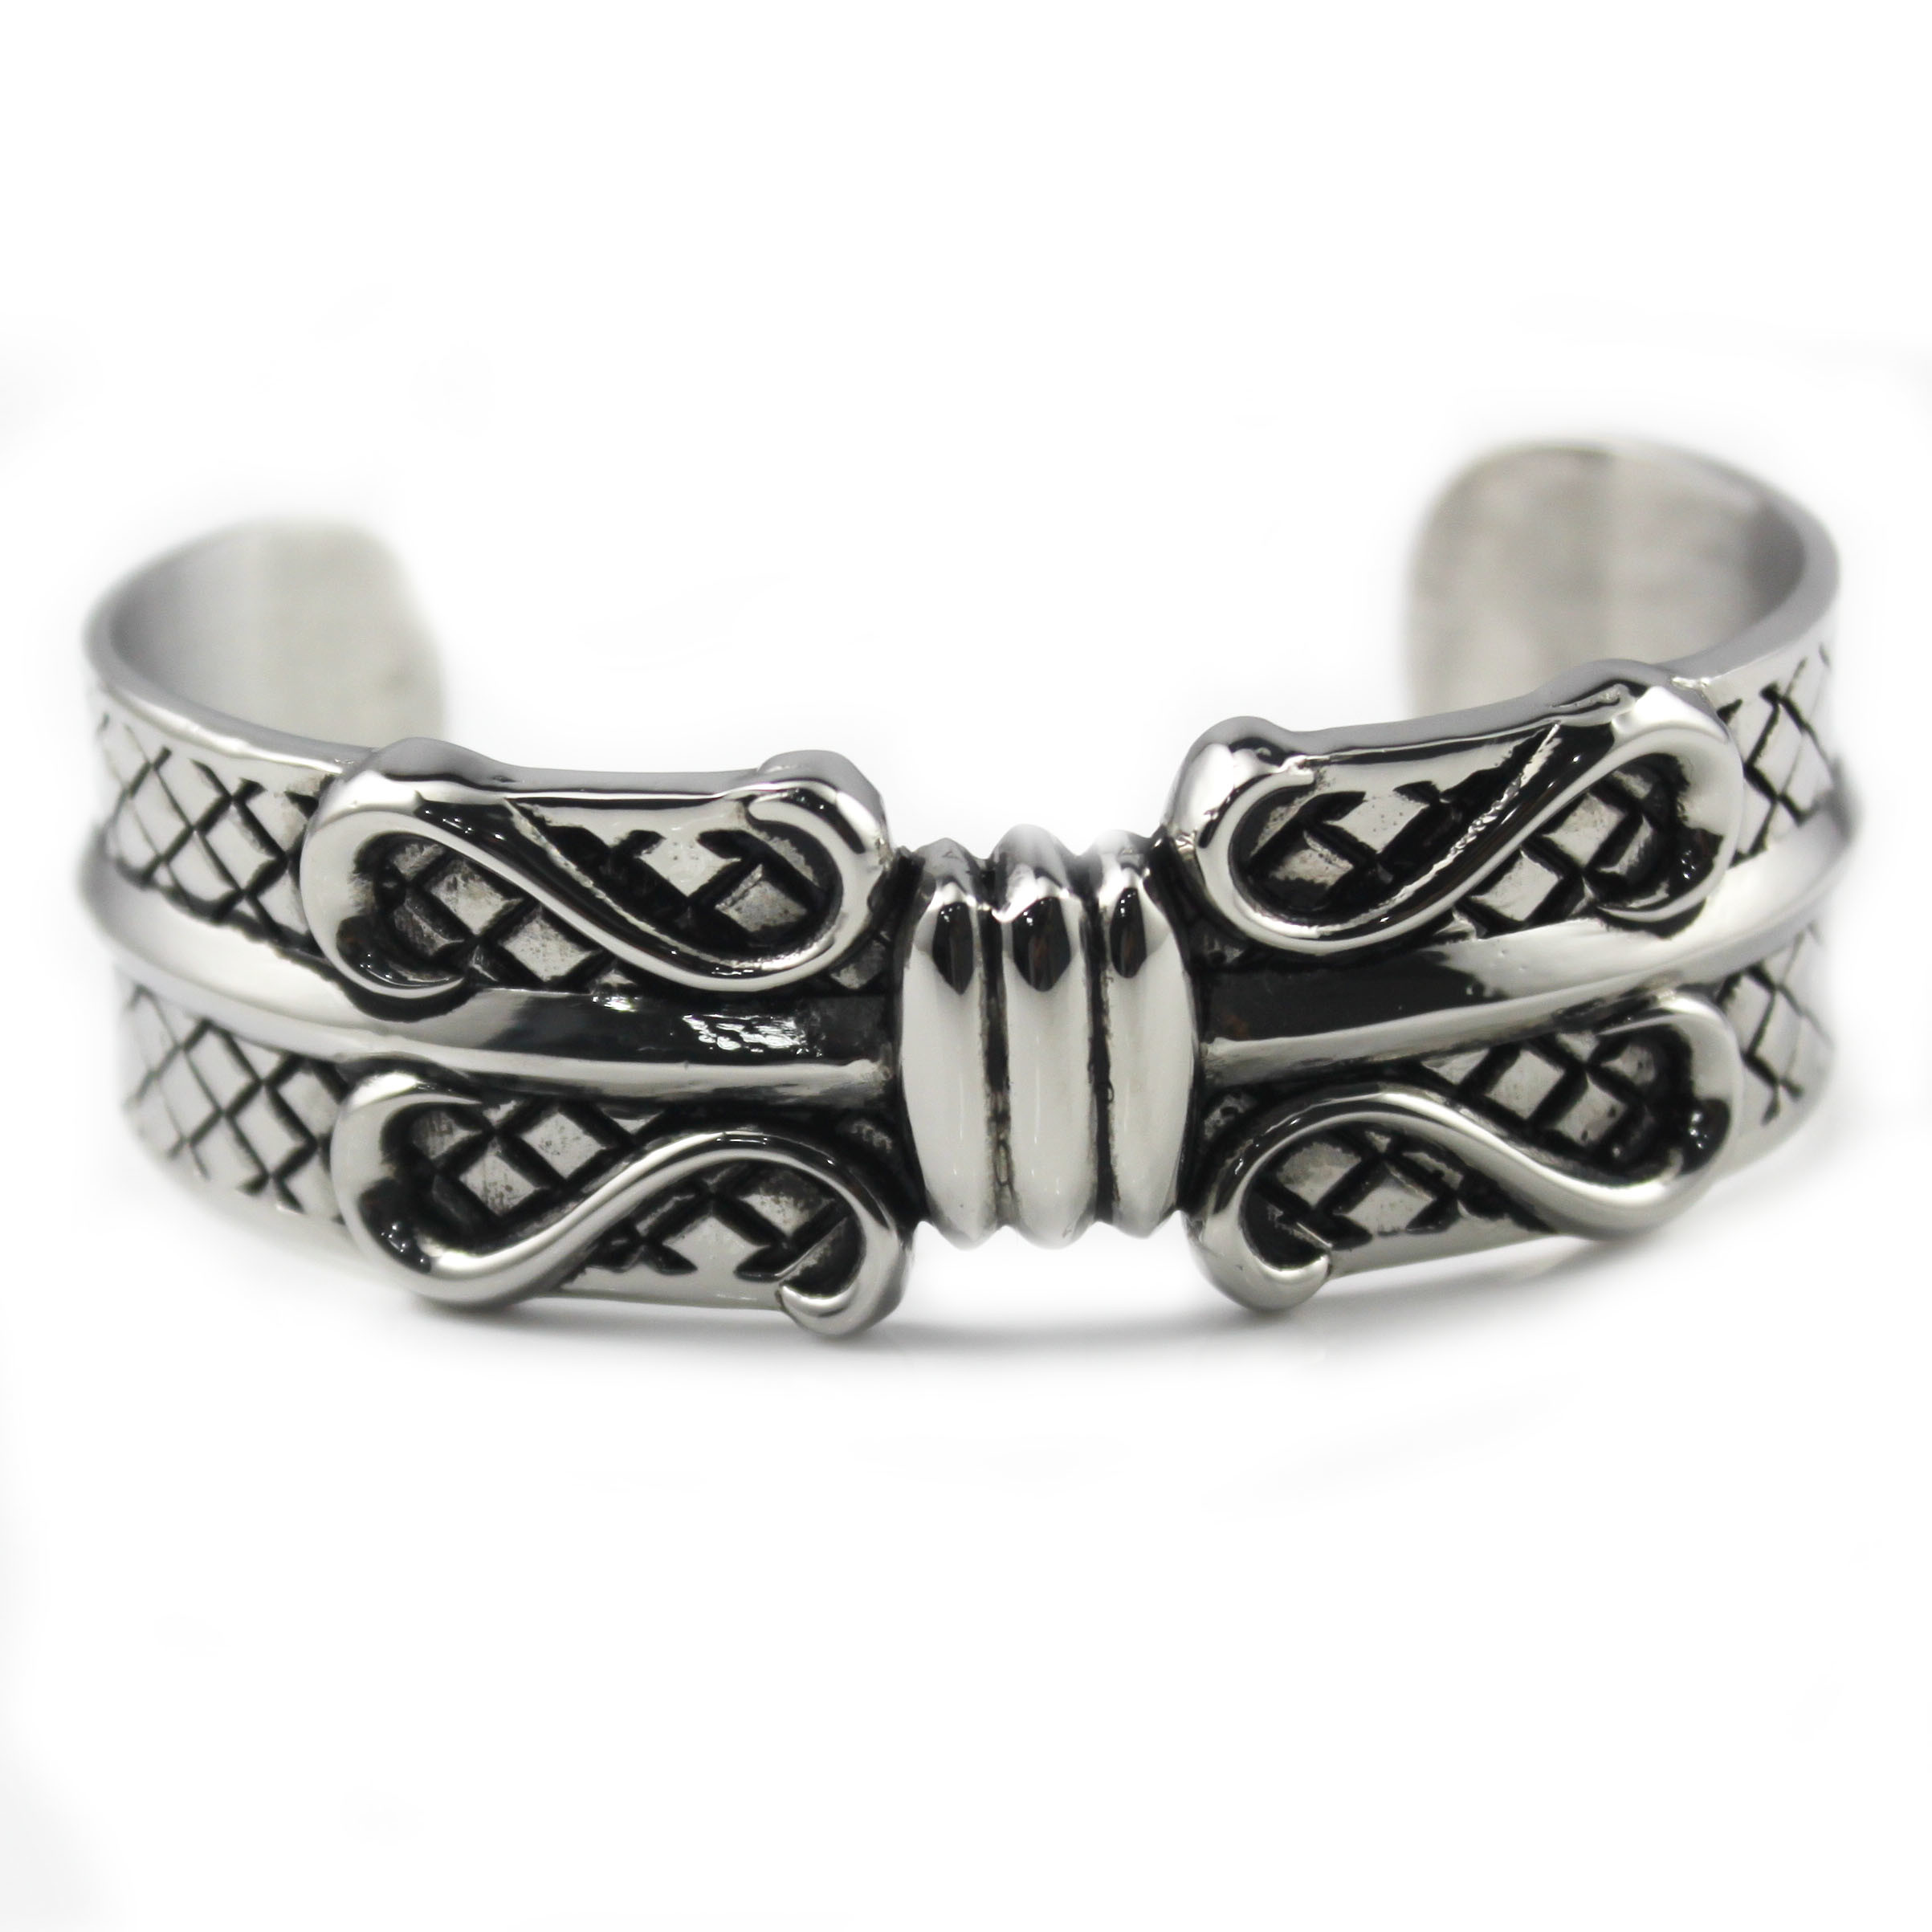 Most Popular Excellent Quality China Sale Retro Bangles with Stainless Steel Bracelet